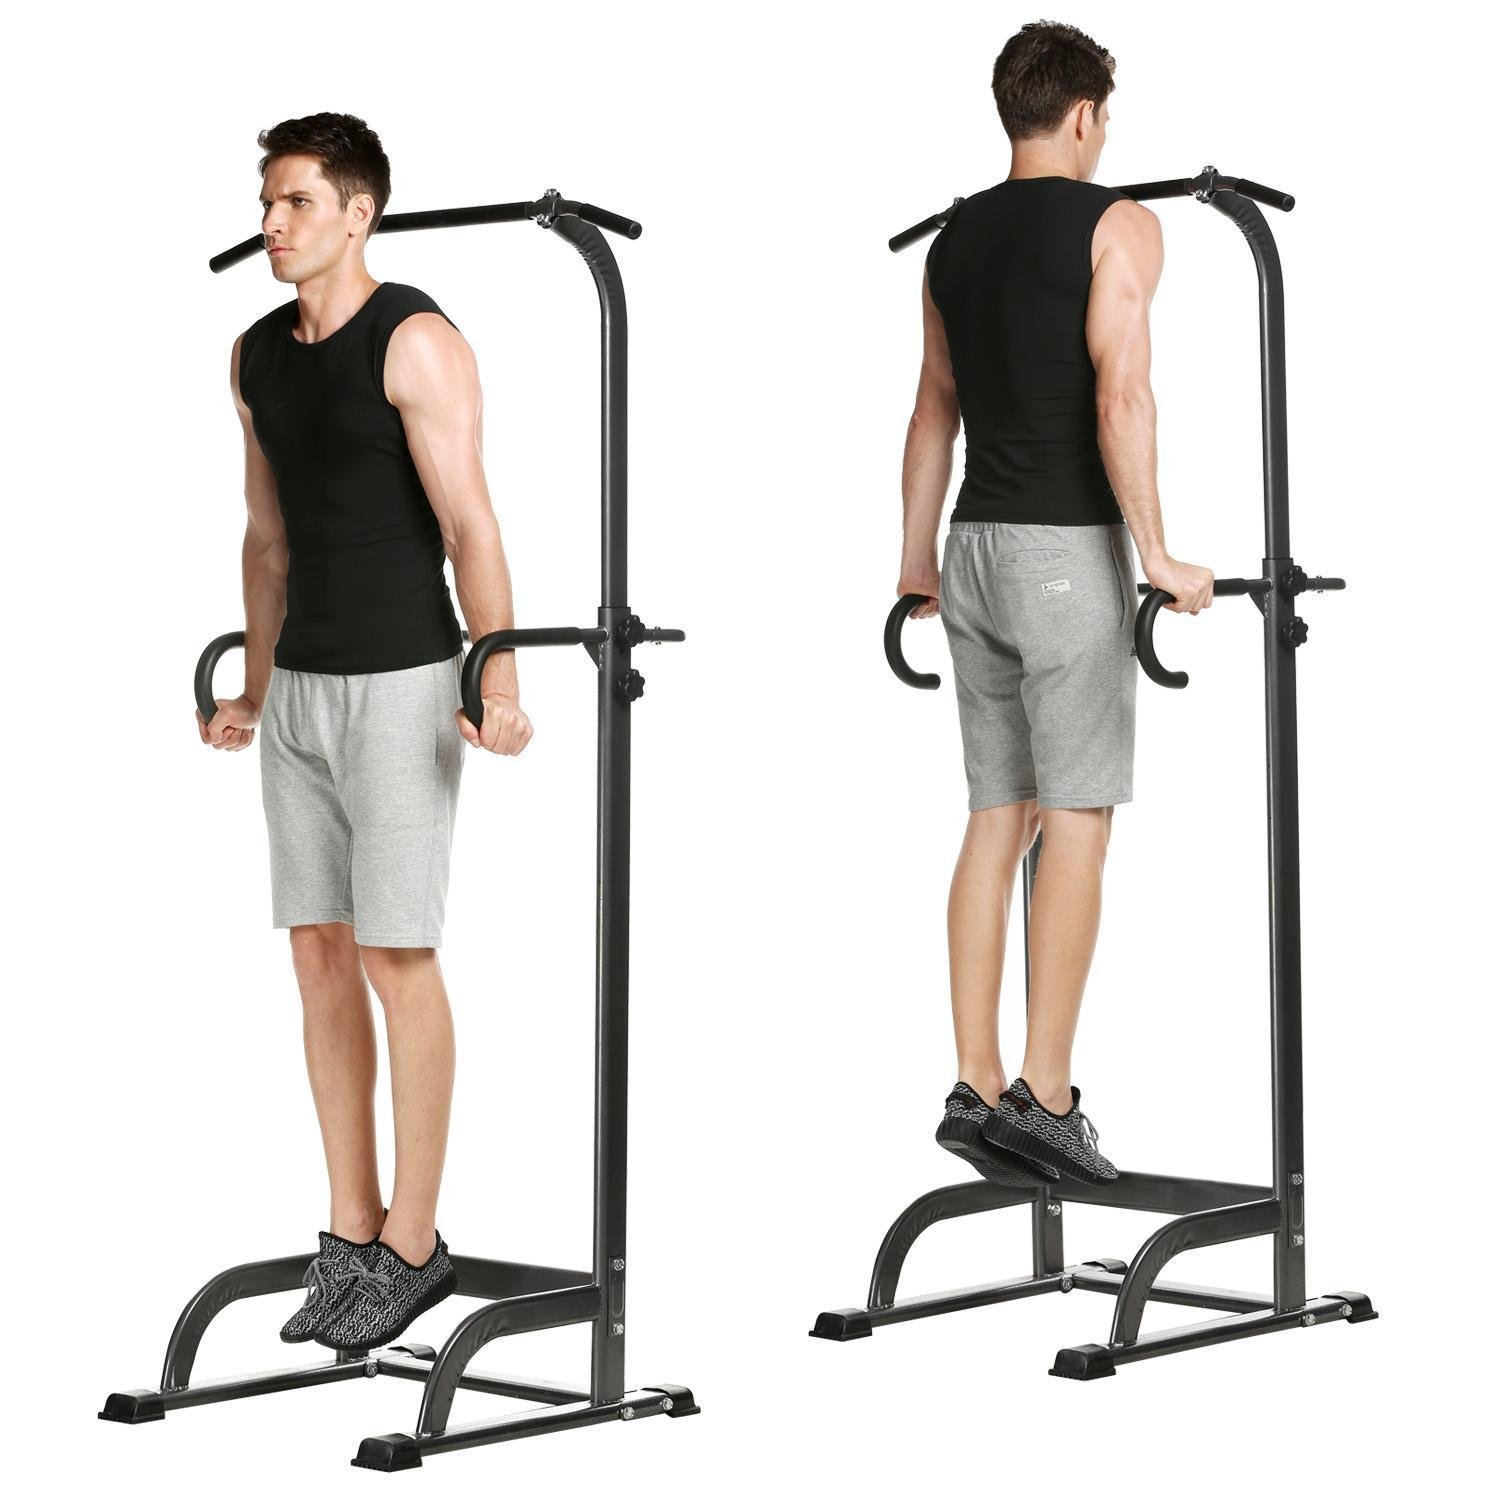 Adjustable Power Tower Dip Station, Multi-Function Pull Up, Chin Up, Push Up, Pull Up Stand for Home Gym Office (US Stock)